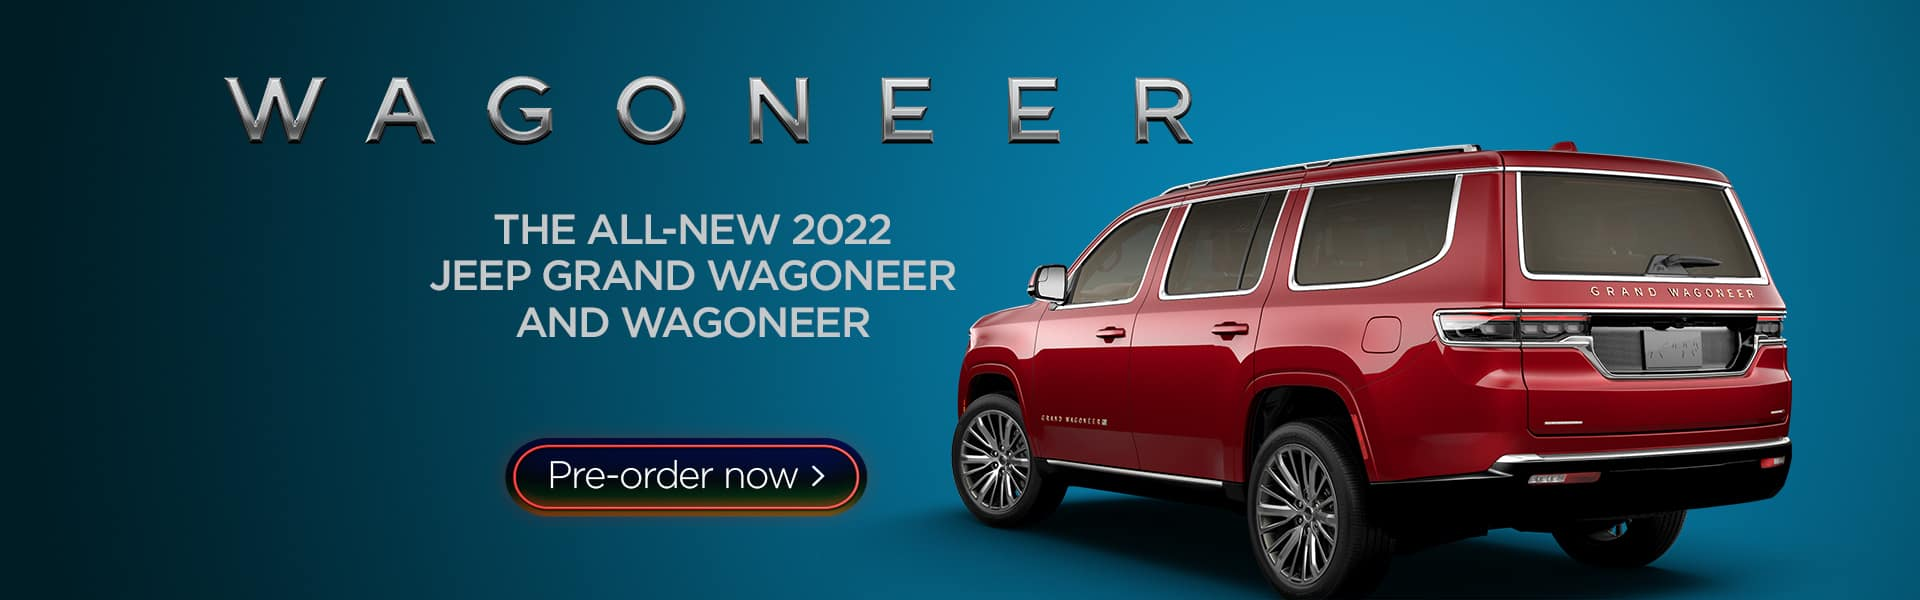 Pre-Order Your Wagoneer